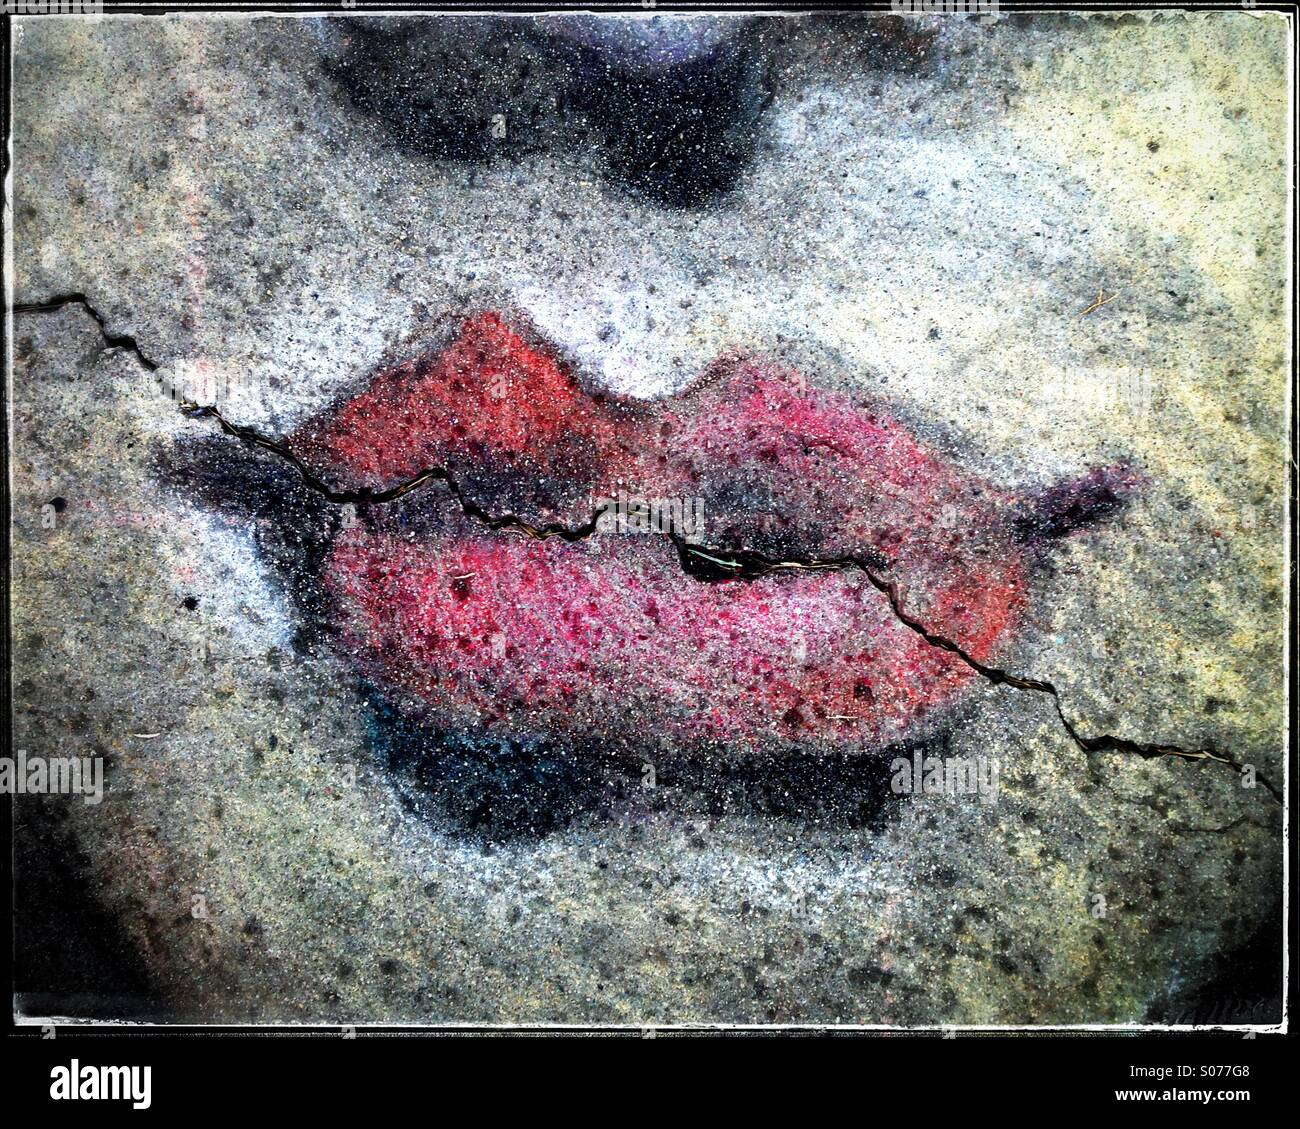 Street Art Of Cracked Lips - Stock Image